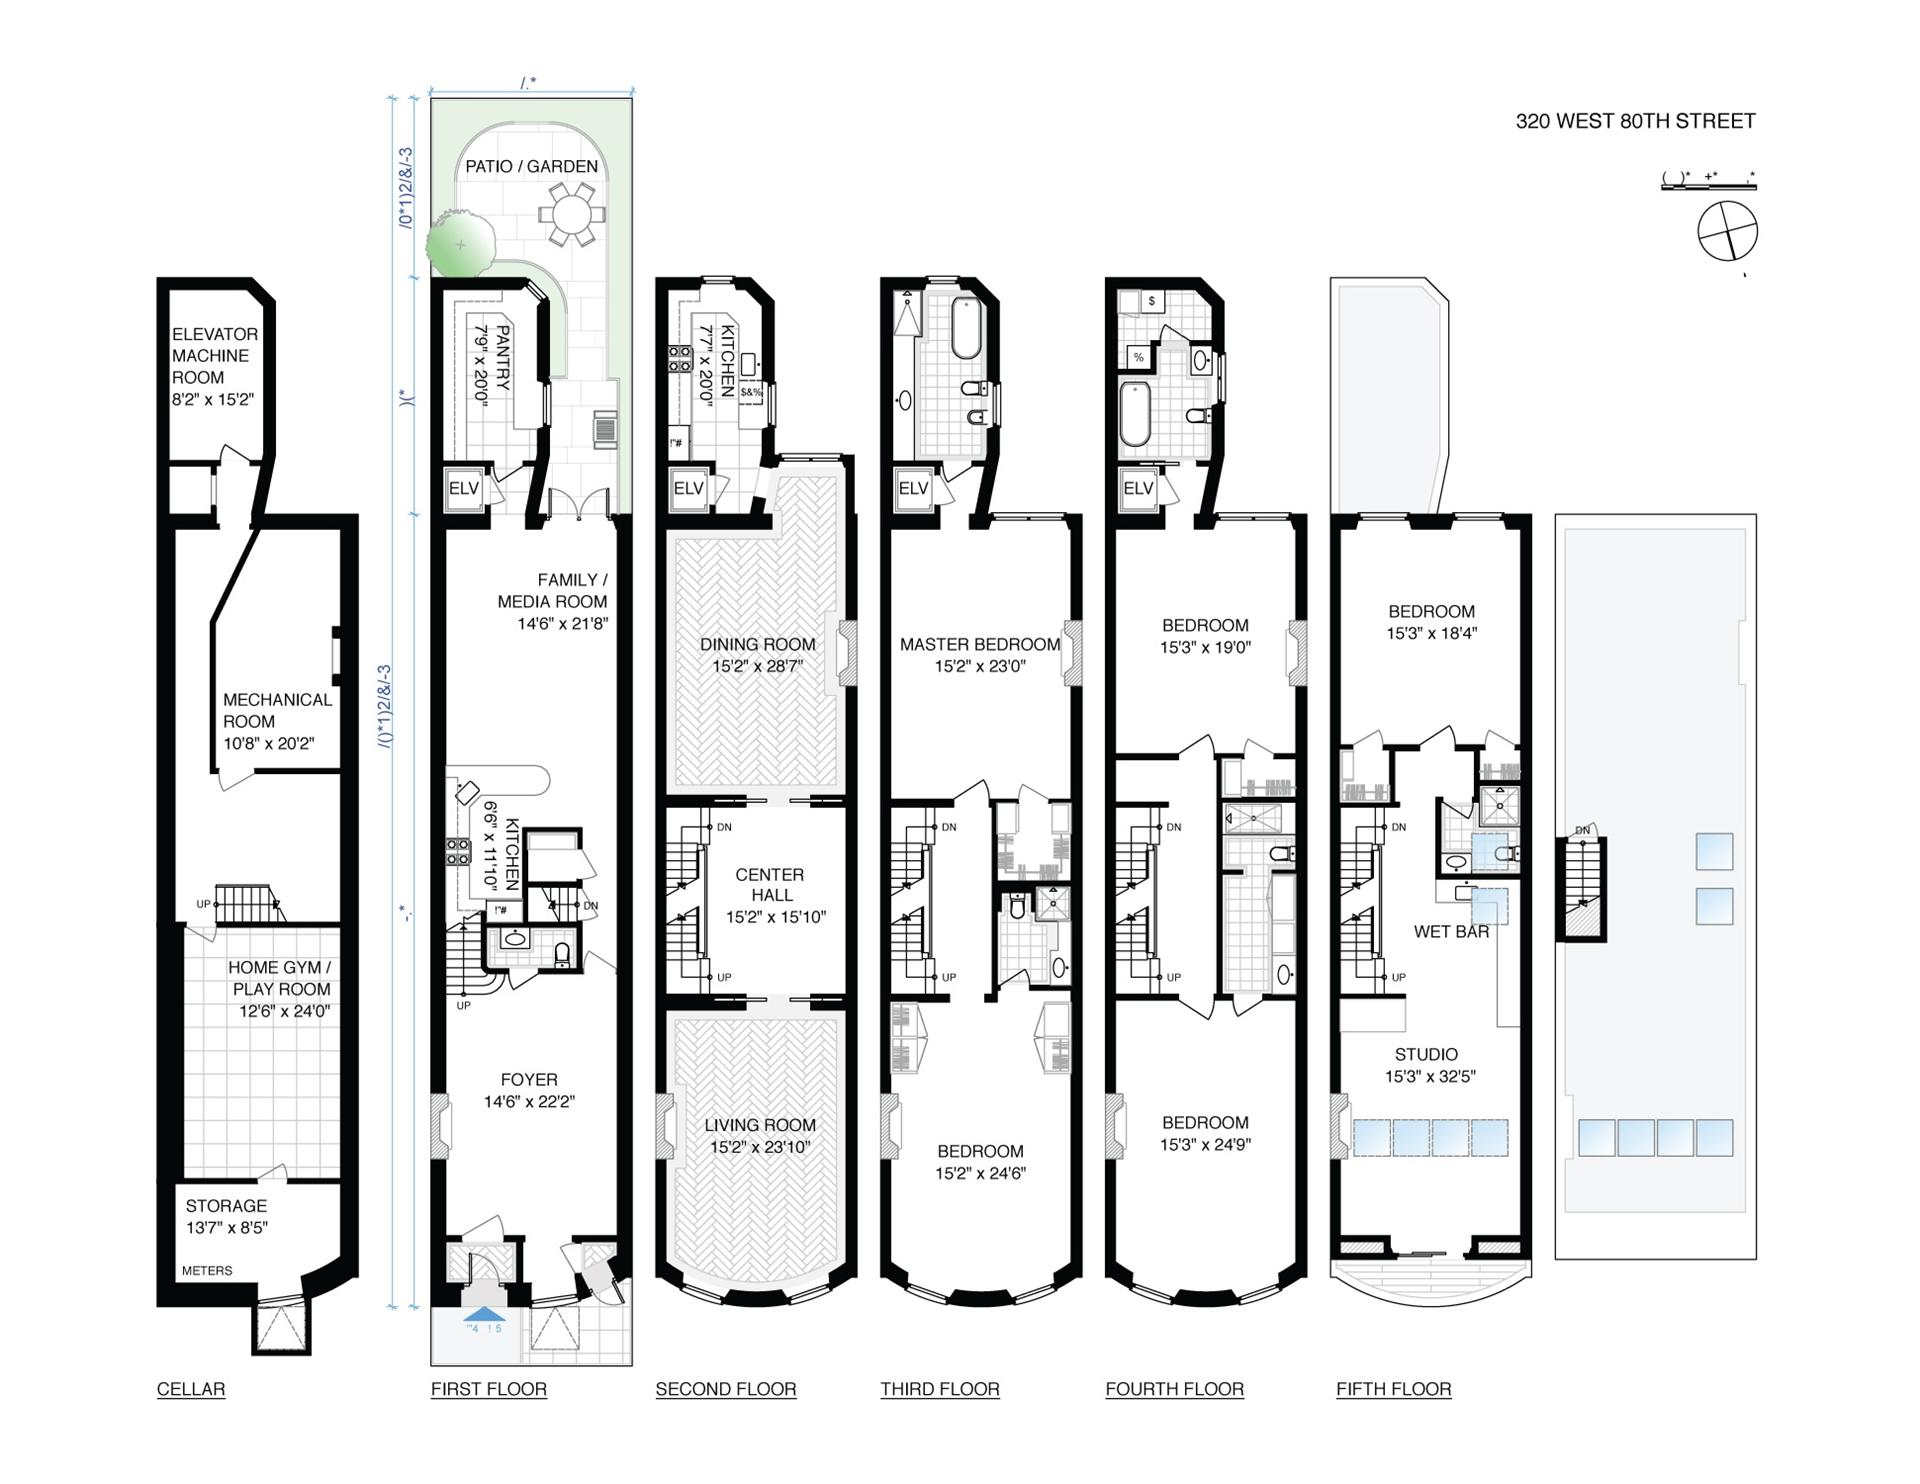 Floor plan of 320 West 80th St - Upper West Side, New York